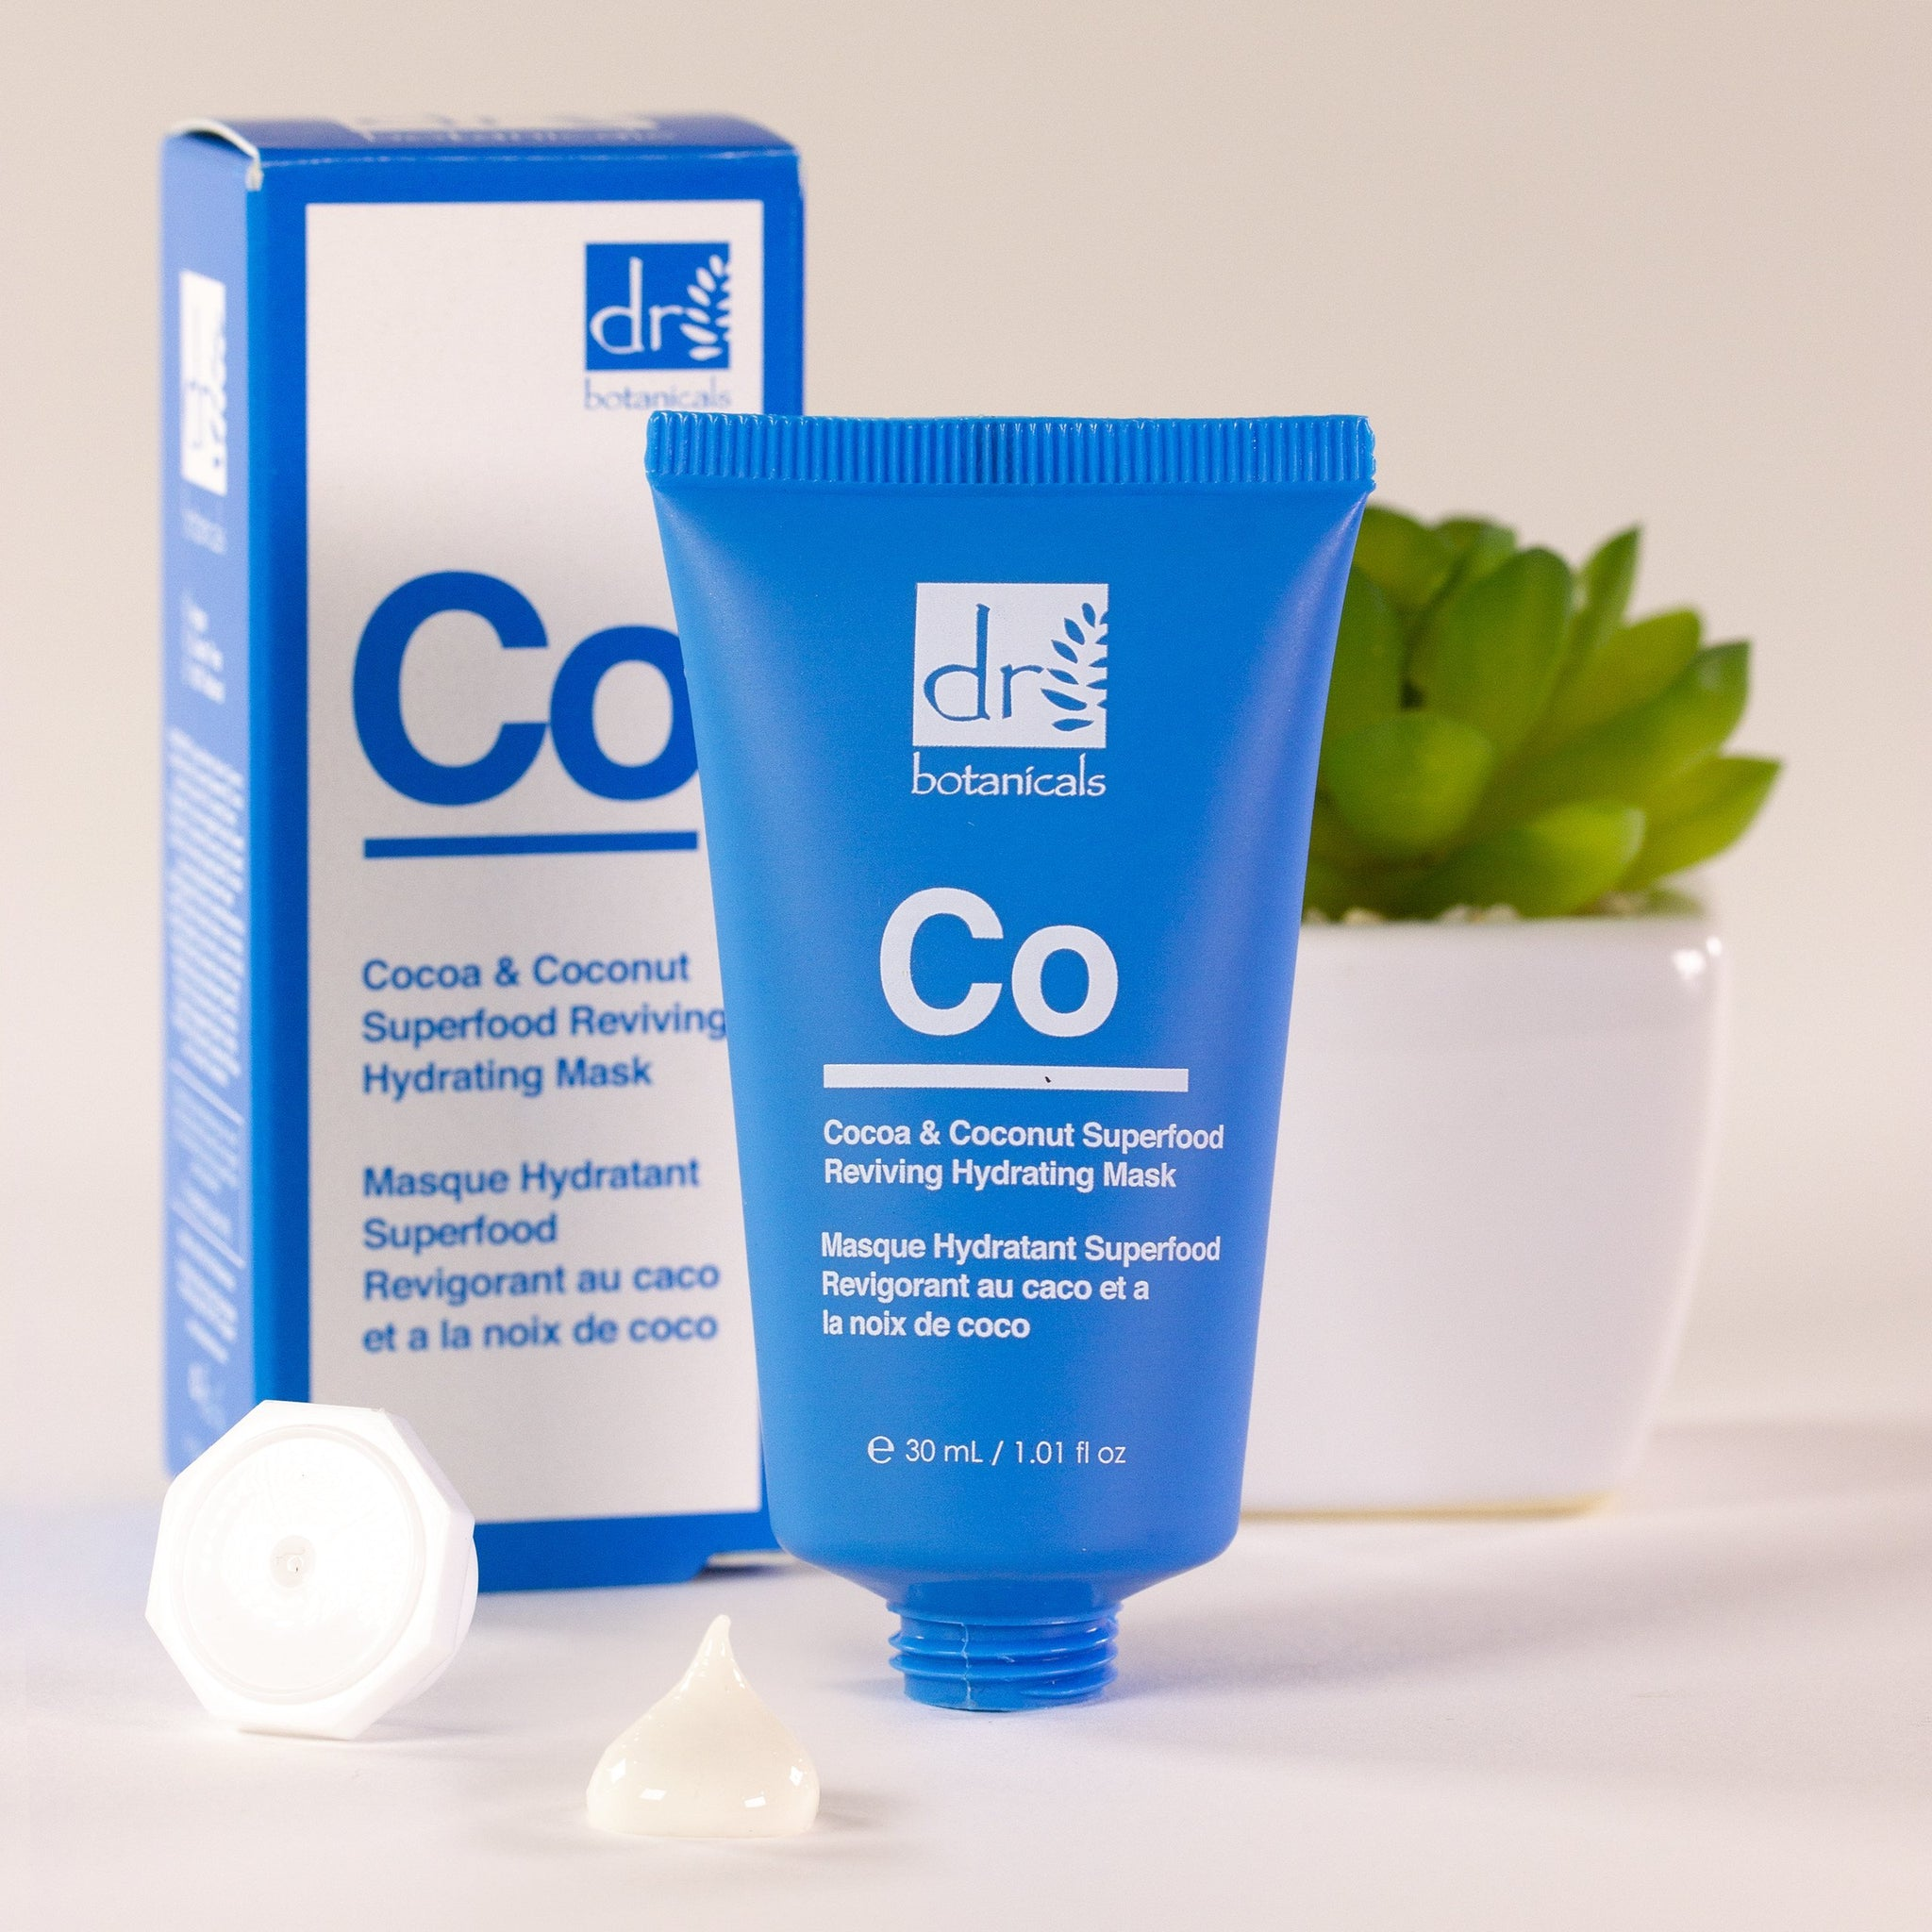 Cocoa & Coconut Superfood Reviving Hydrating Mask 30ml